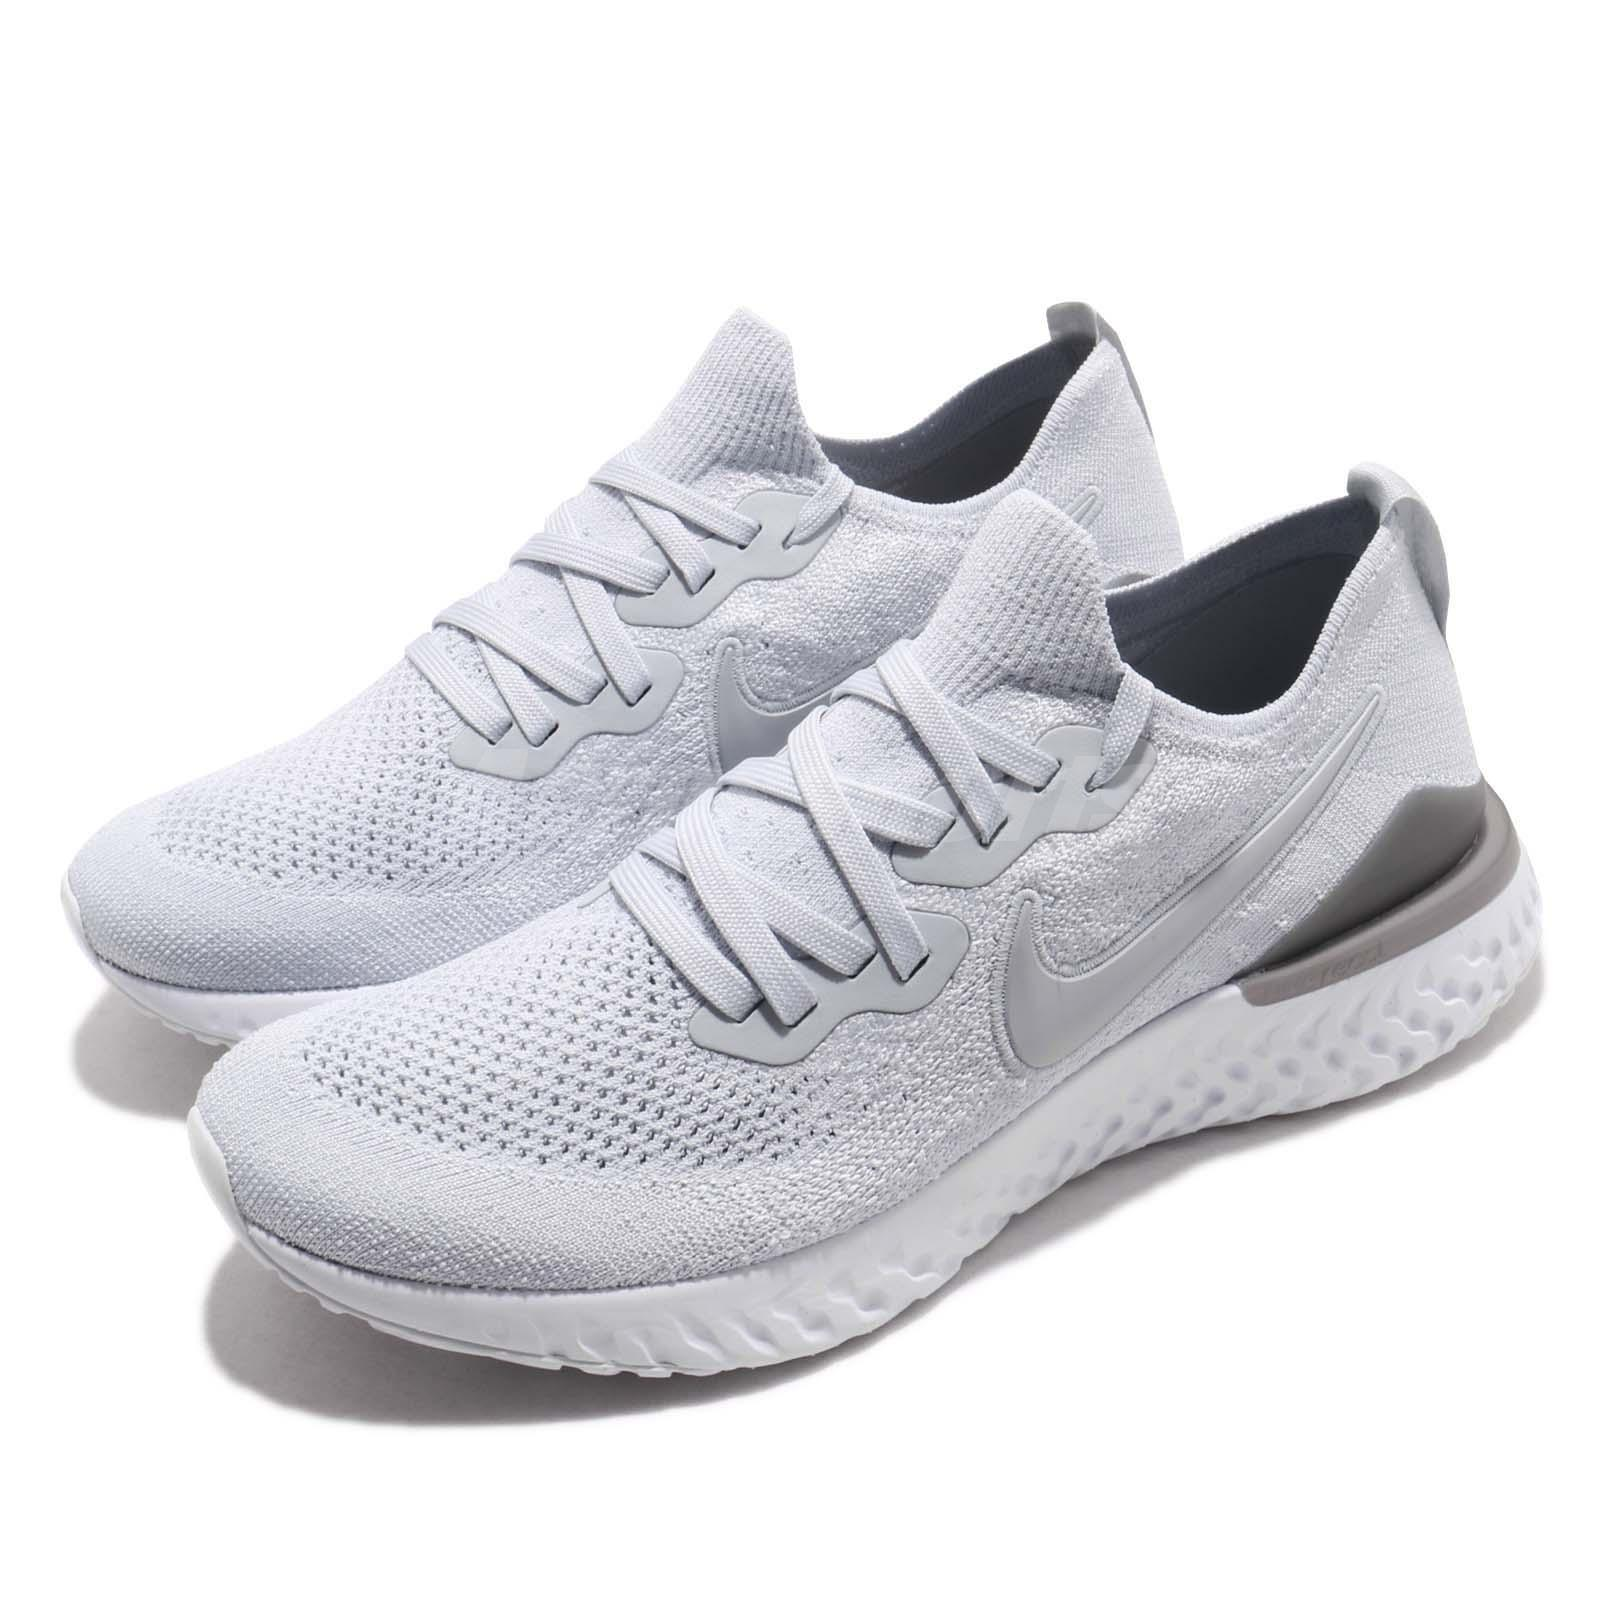 19235bb3fb8d Details about Nike Epic React Flyknit 2 II Pure Platinum Men Running Shoes  Sneakers BQ8928-004